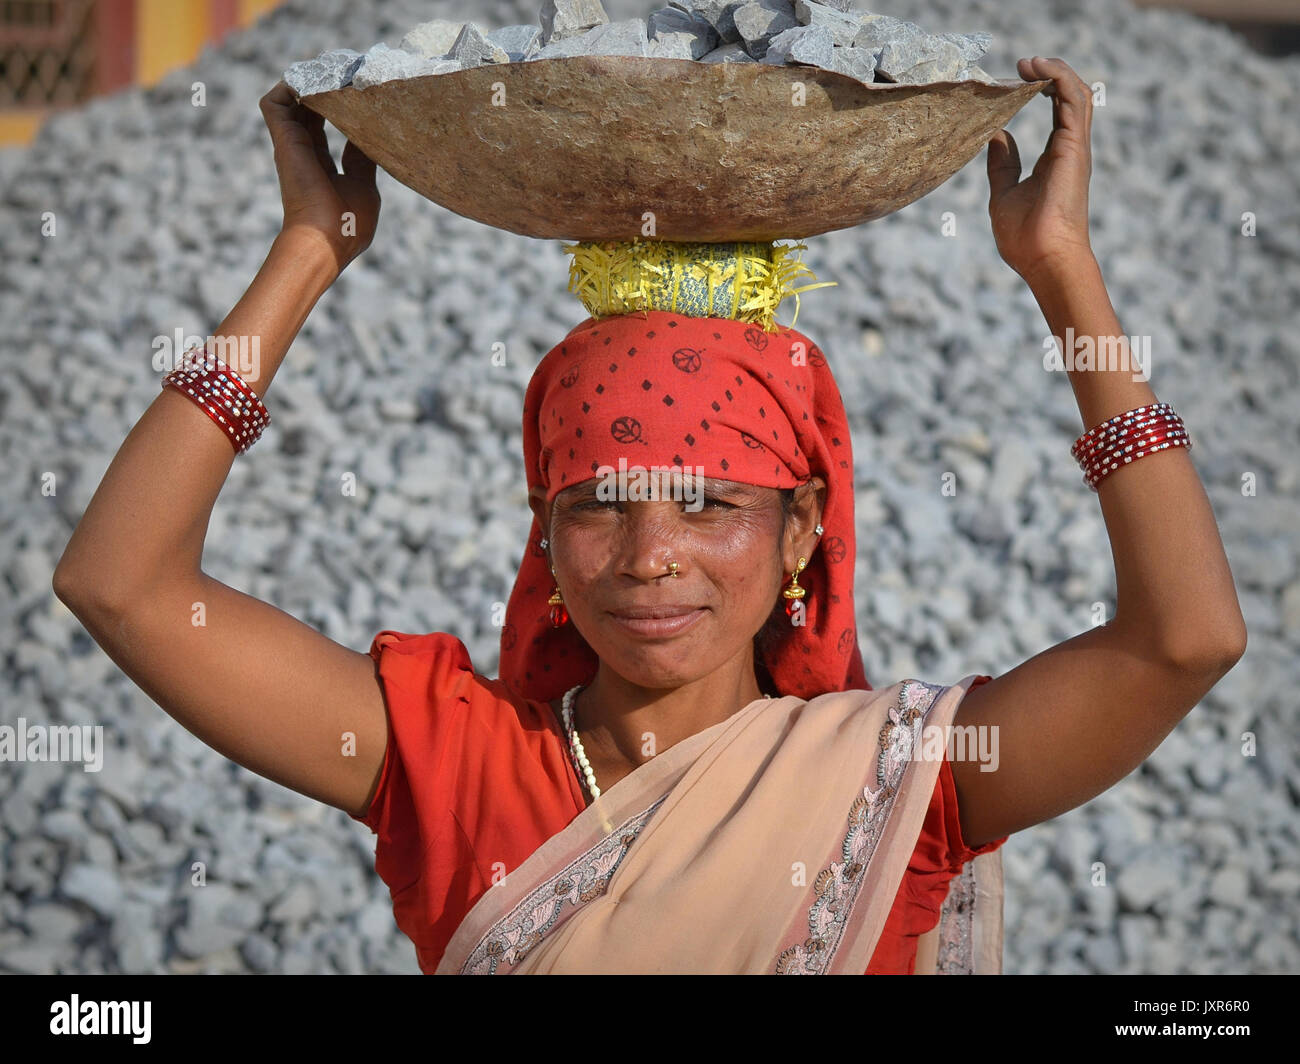 Closeup street portrait of a sari-clad mature Indian Adivasi tribal woman, carrying on her head a metal bowl with Stock Photo